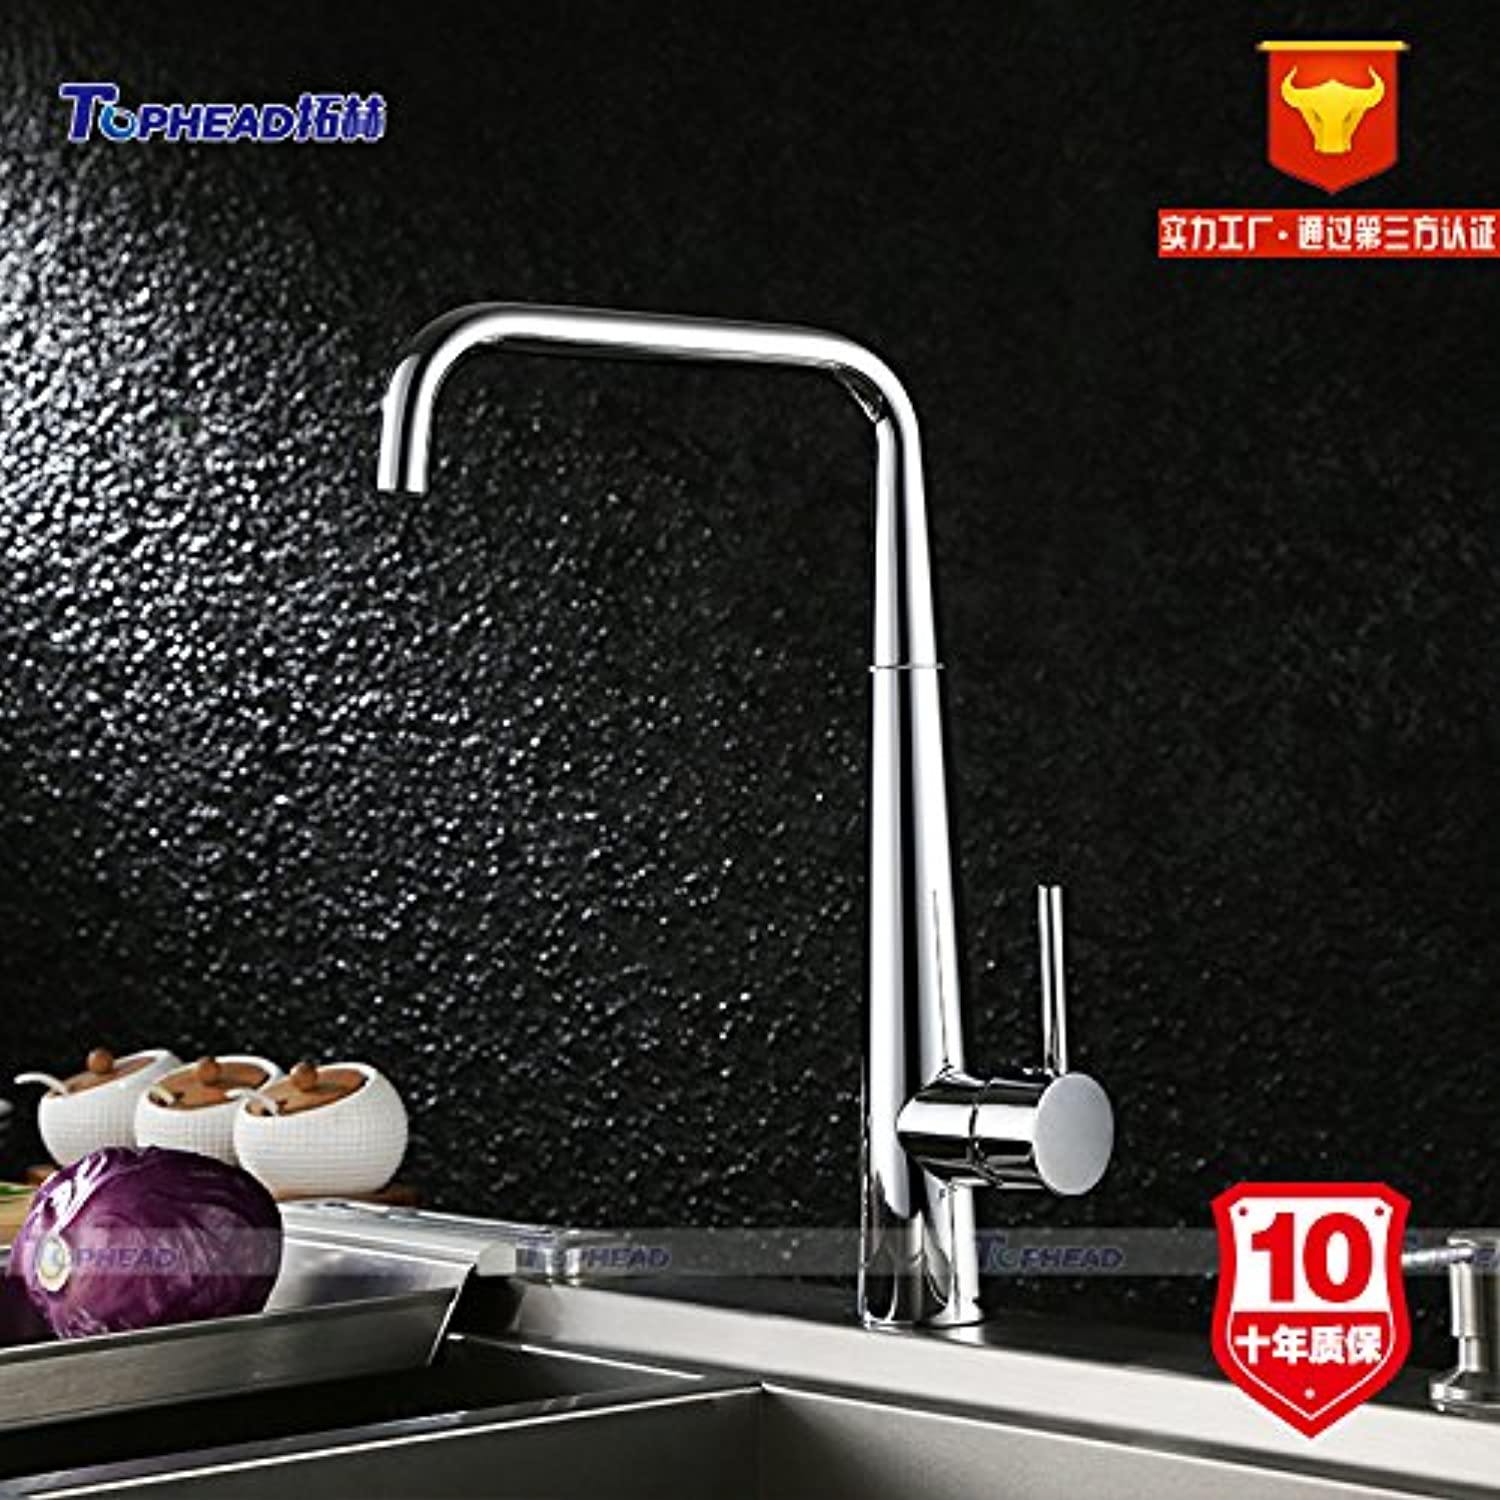 Commercial Single Lever Pull Down Kitchen Sink Faucet Brass Constructed Polished Kitchen Faucet Kitchen Faucet Lead-Free hot and Cold Faucet Single Hole Sink Sink Mixed Wholesale,SH005-5